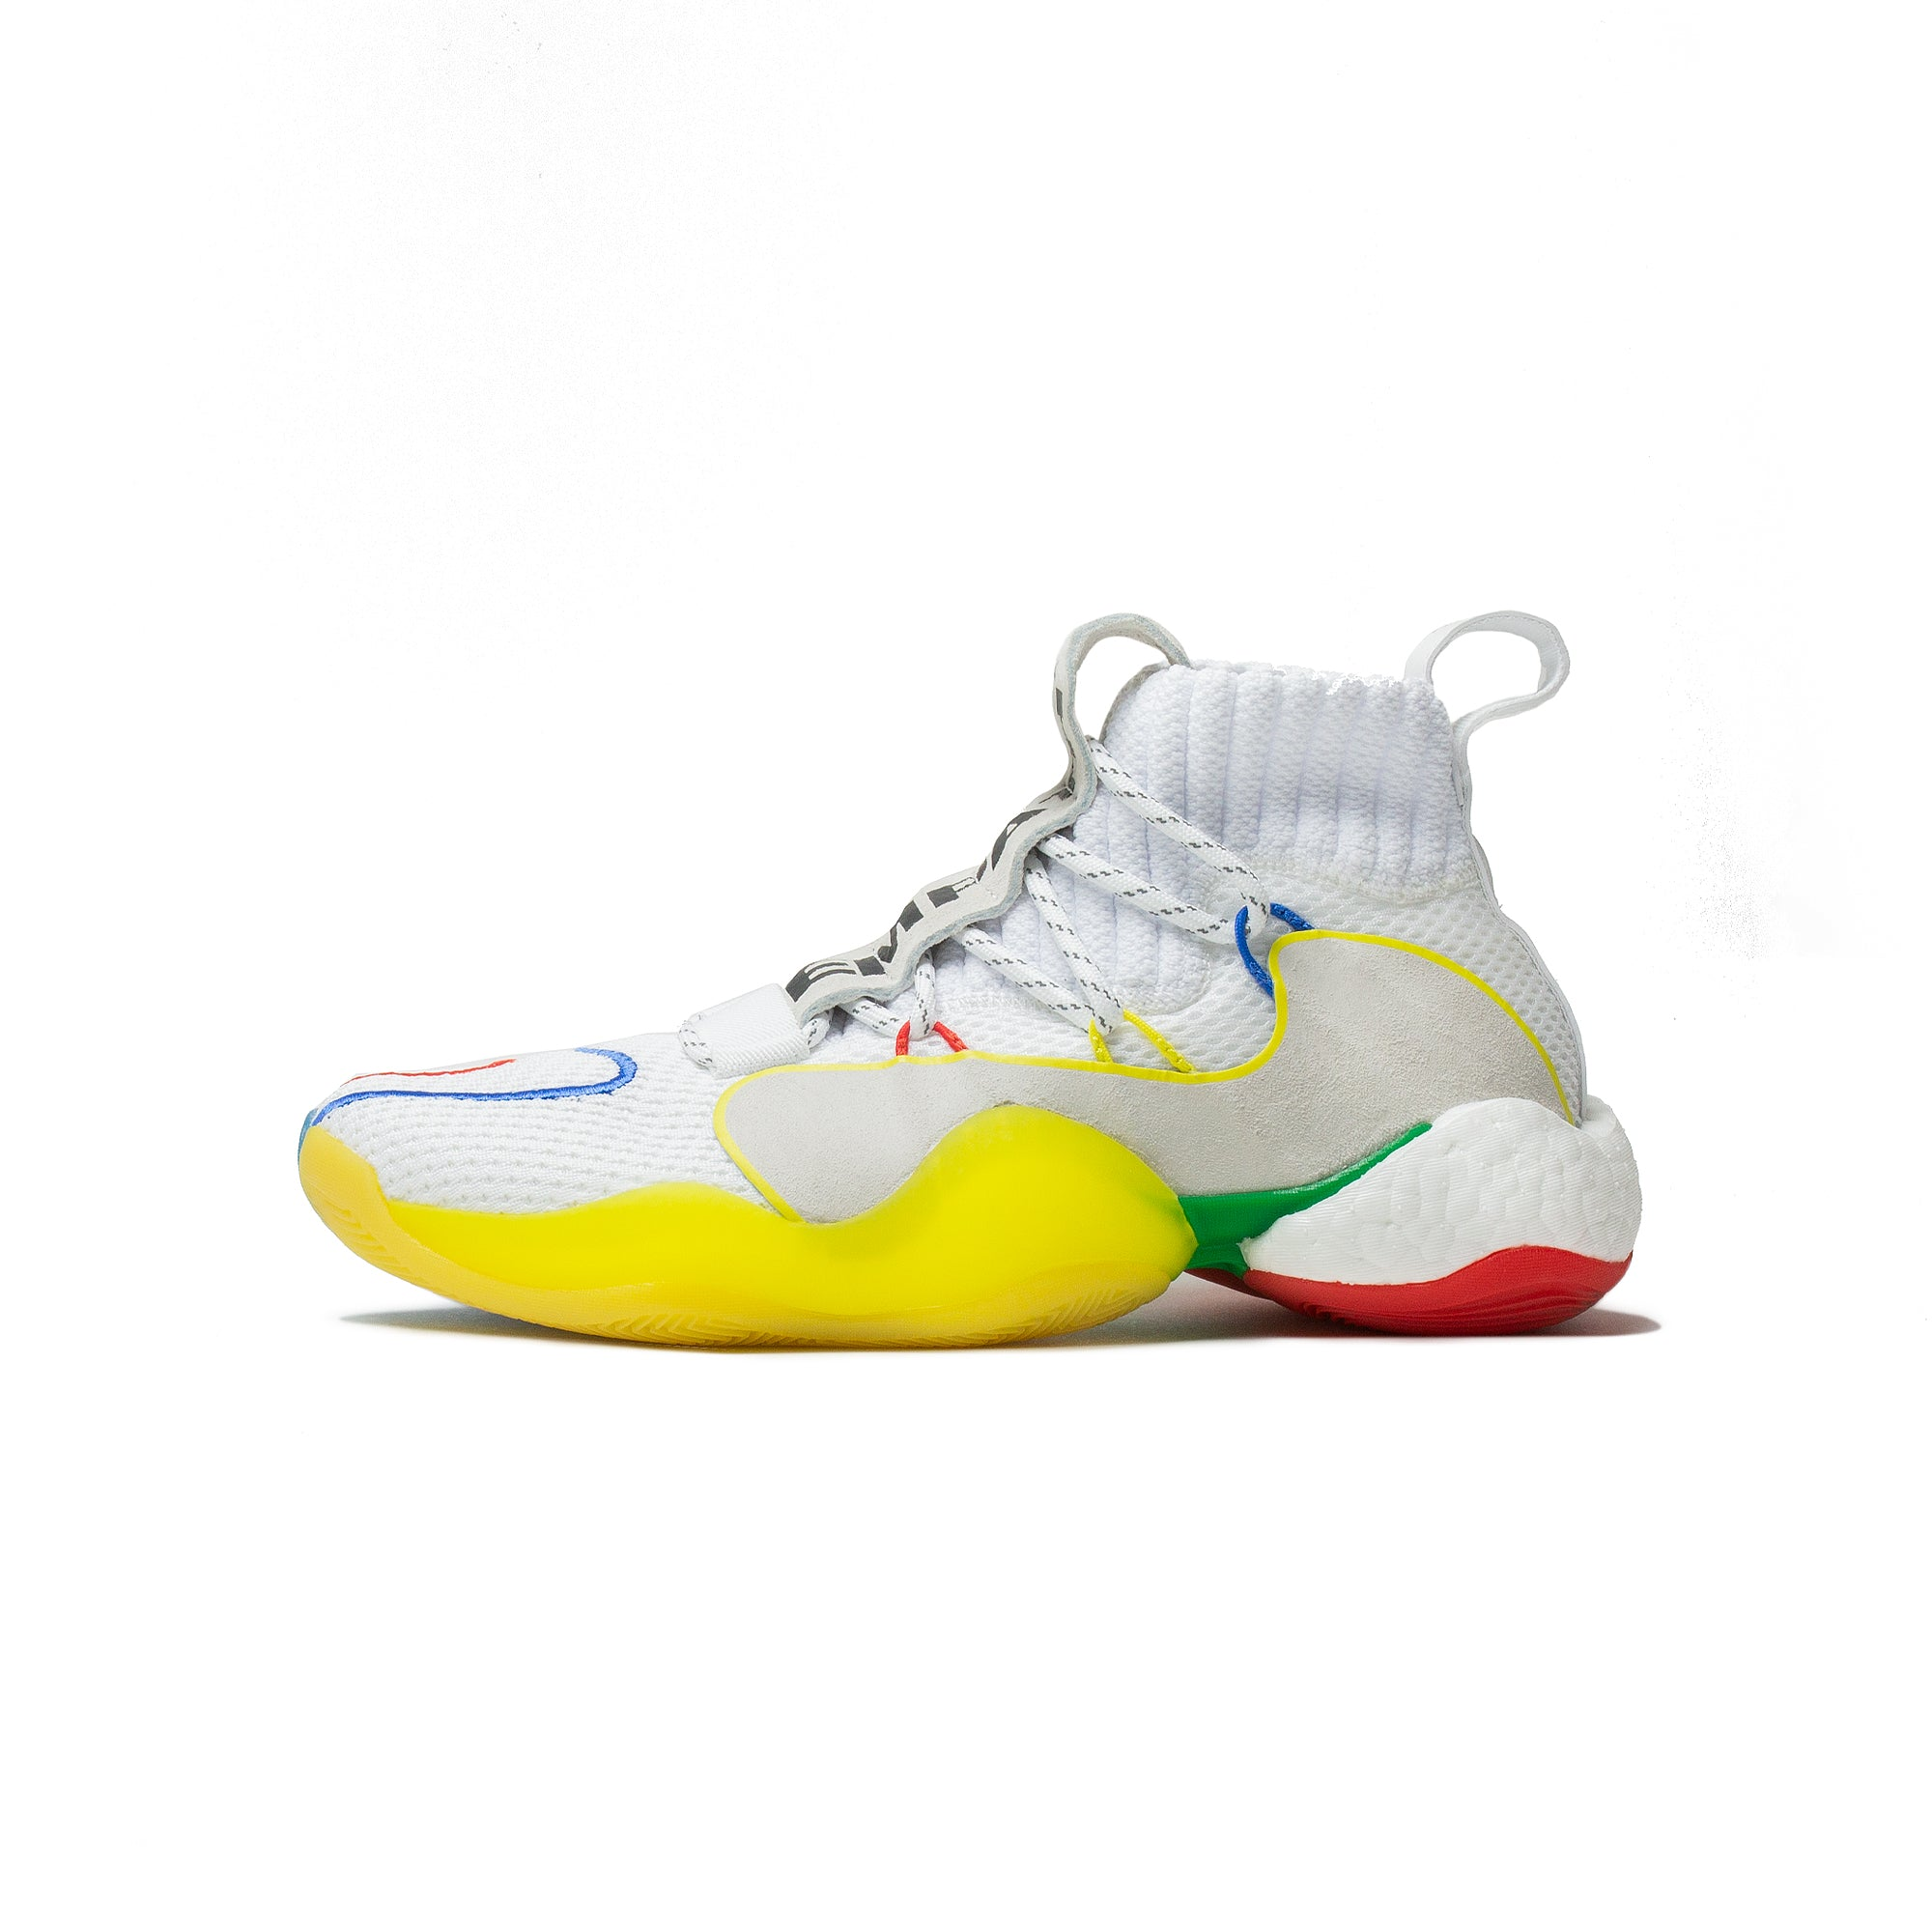 dad56b54c6747 adidas Crazy BYW LVL X Pharrell Williams  EF3500